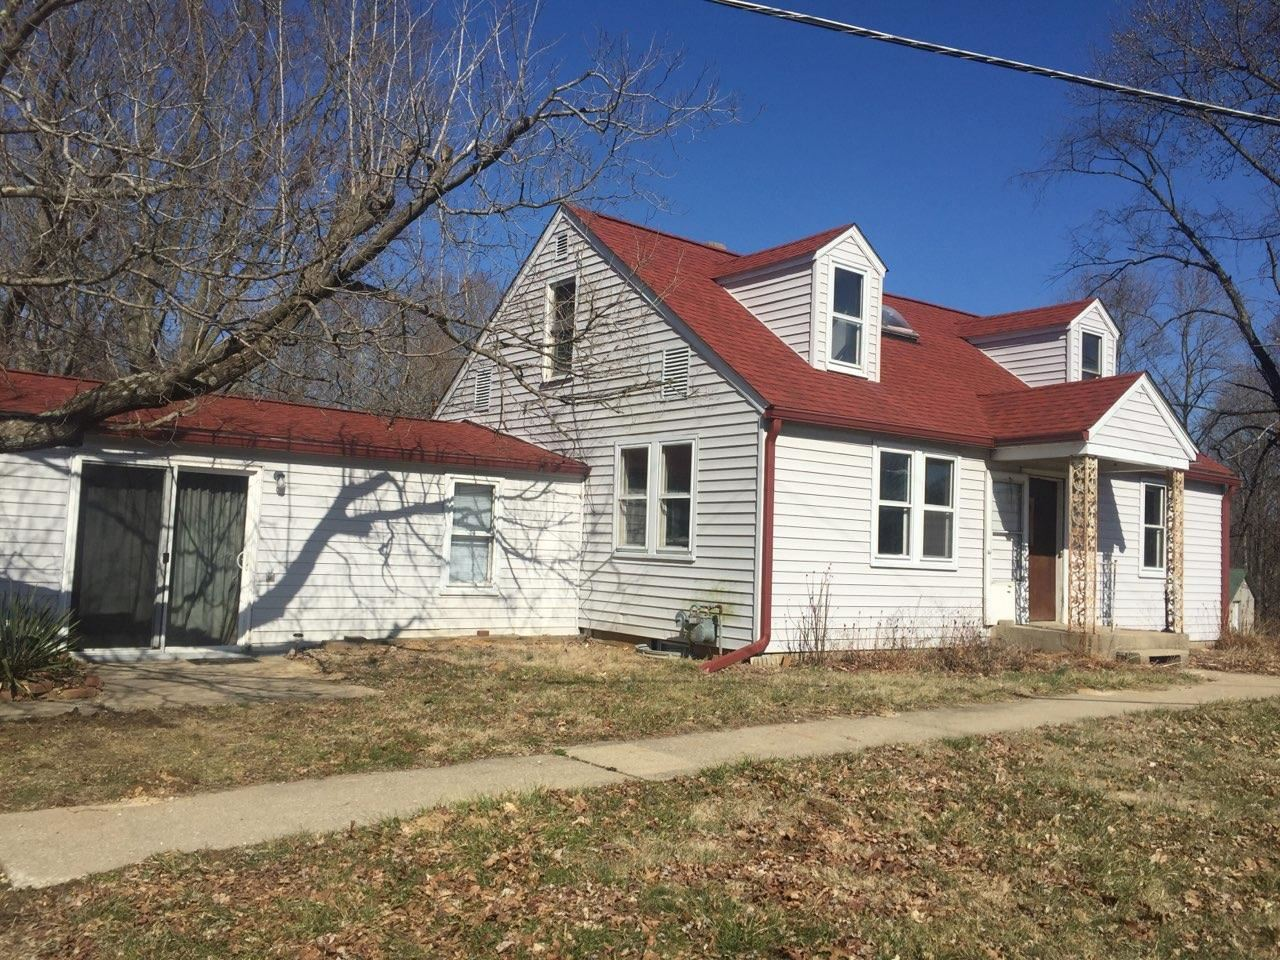 Photo of 7085 E State Road 45 Road, Bloomington, IN 47408 (MLS # 202006667)